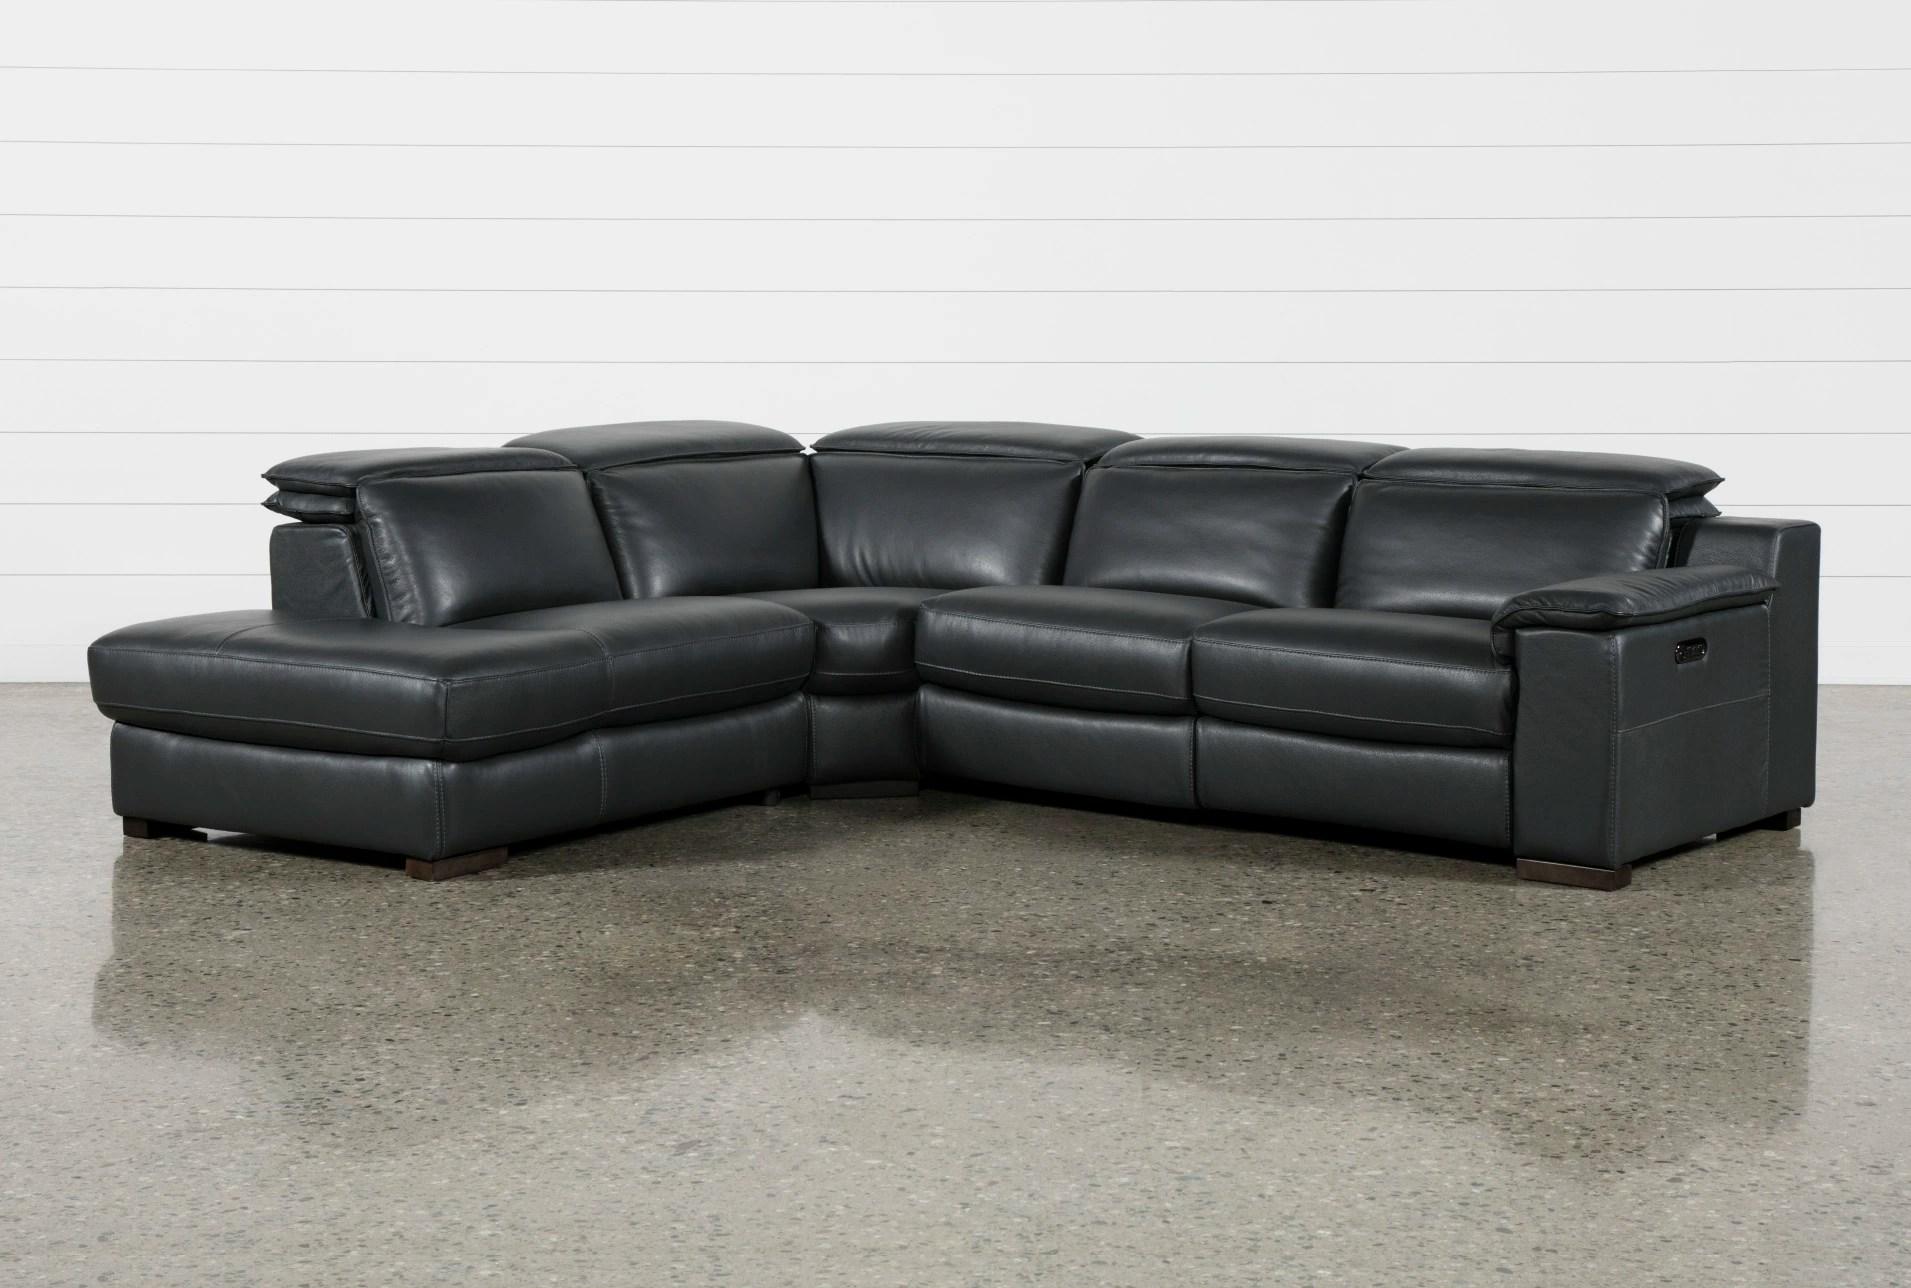 gladiator power dual reclining sofa reviews tall bed sectionals sectional sofas living spaces hana slate leather 3 piece with left facing chaise